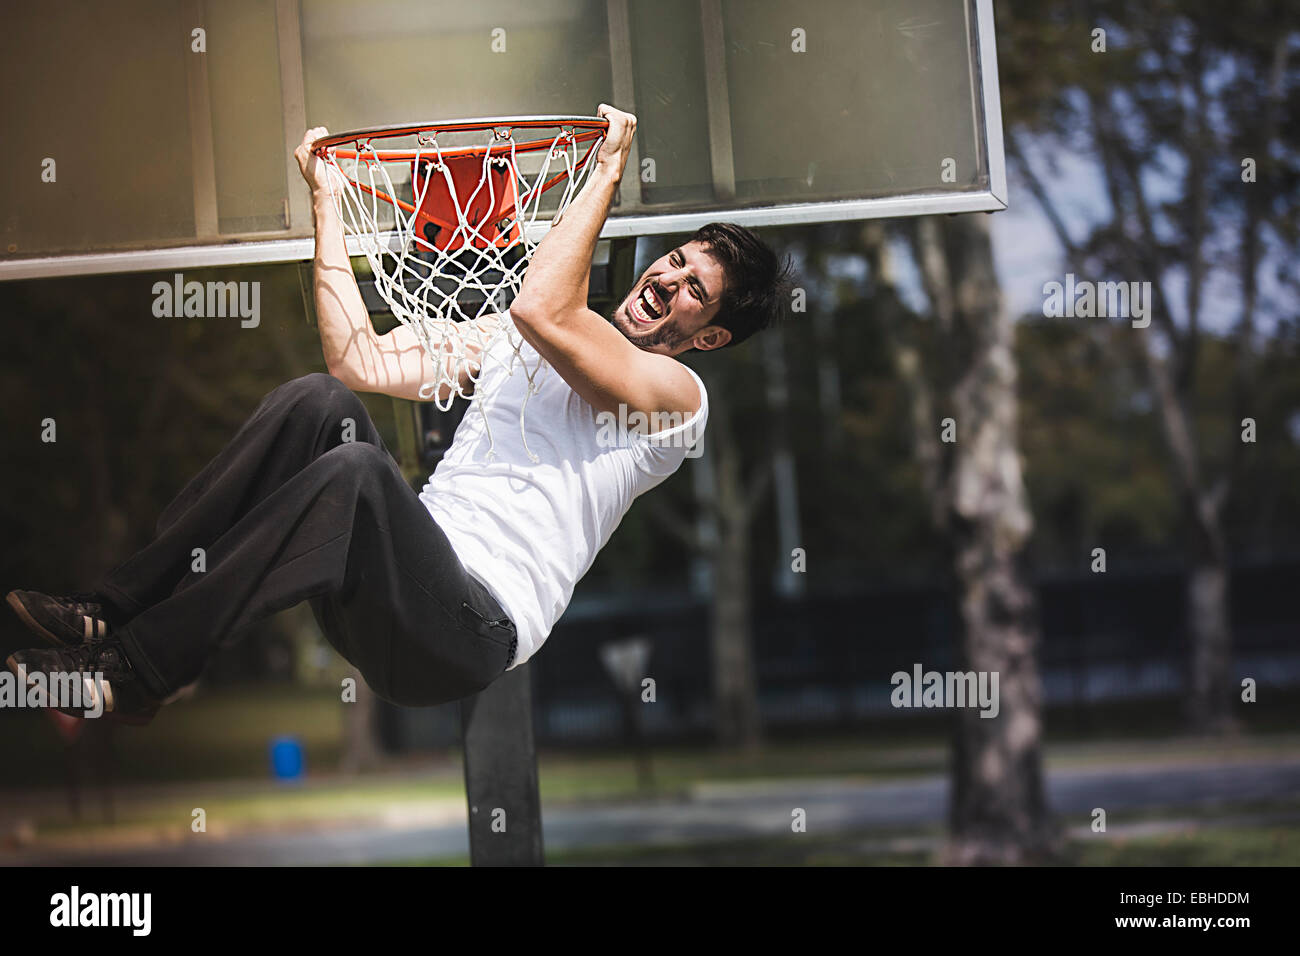 Les jeunes de basket-ball masculin de basket-ball Photo Stock